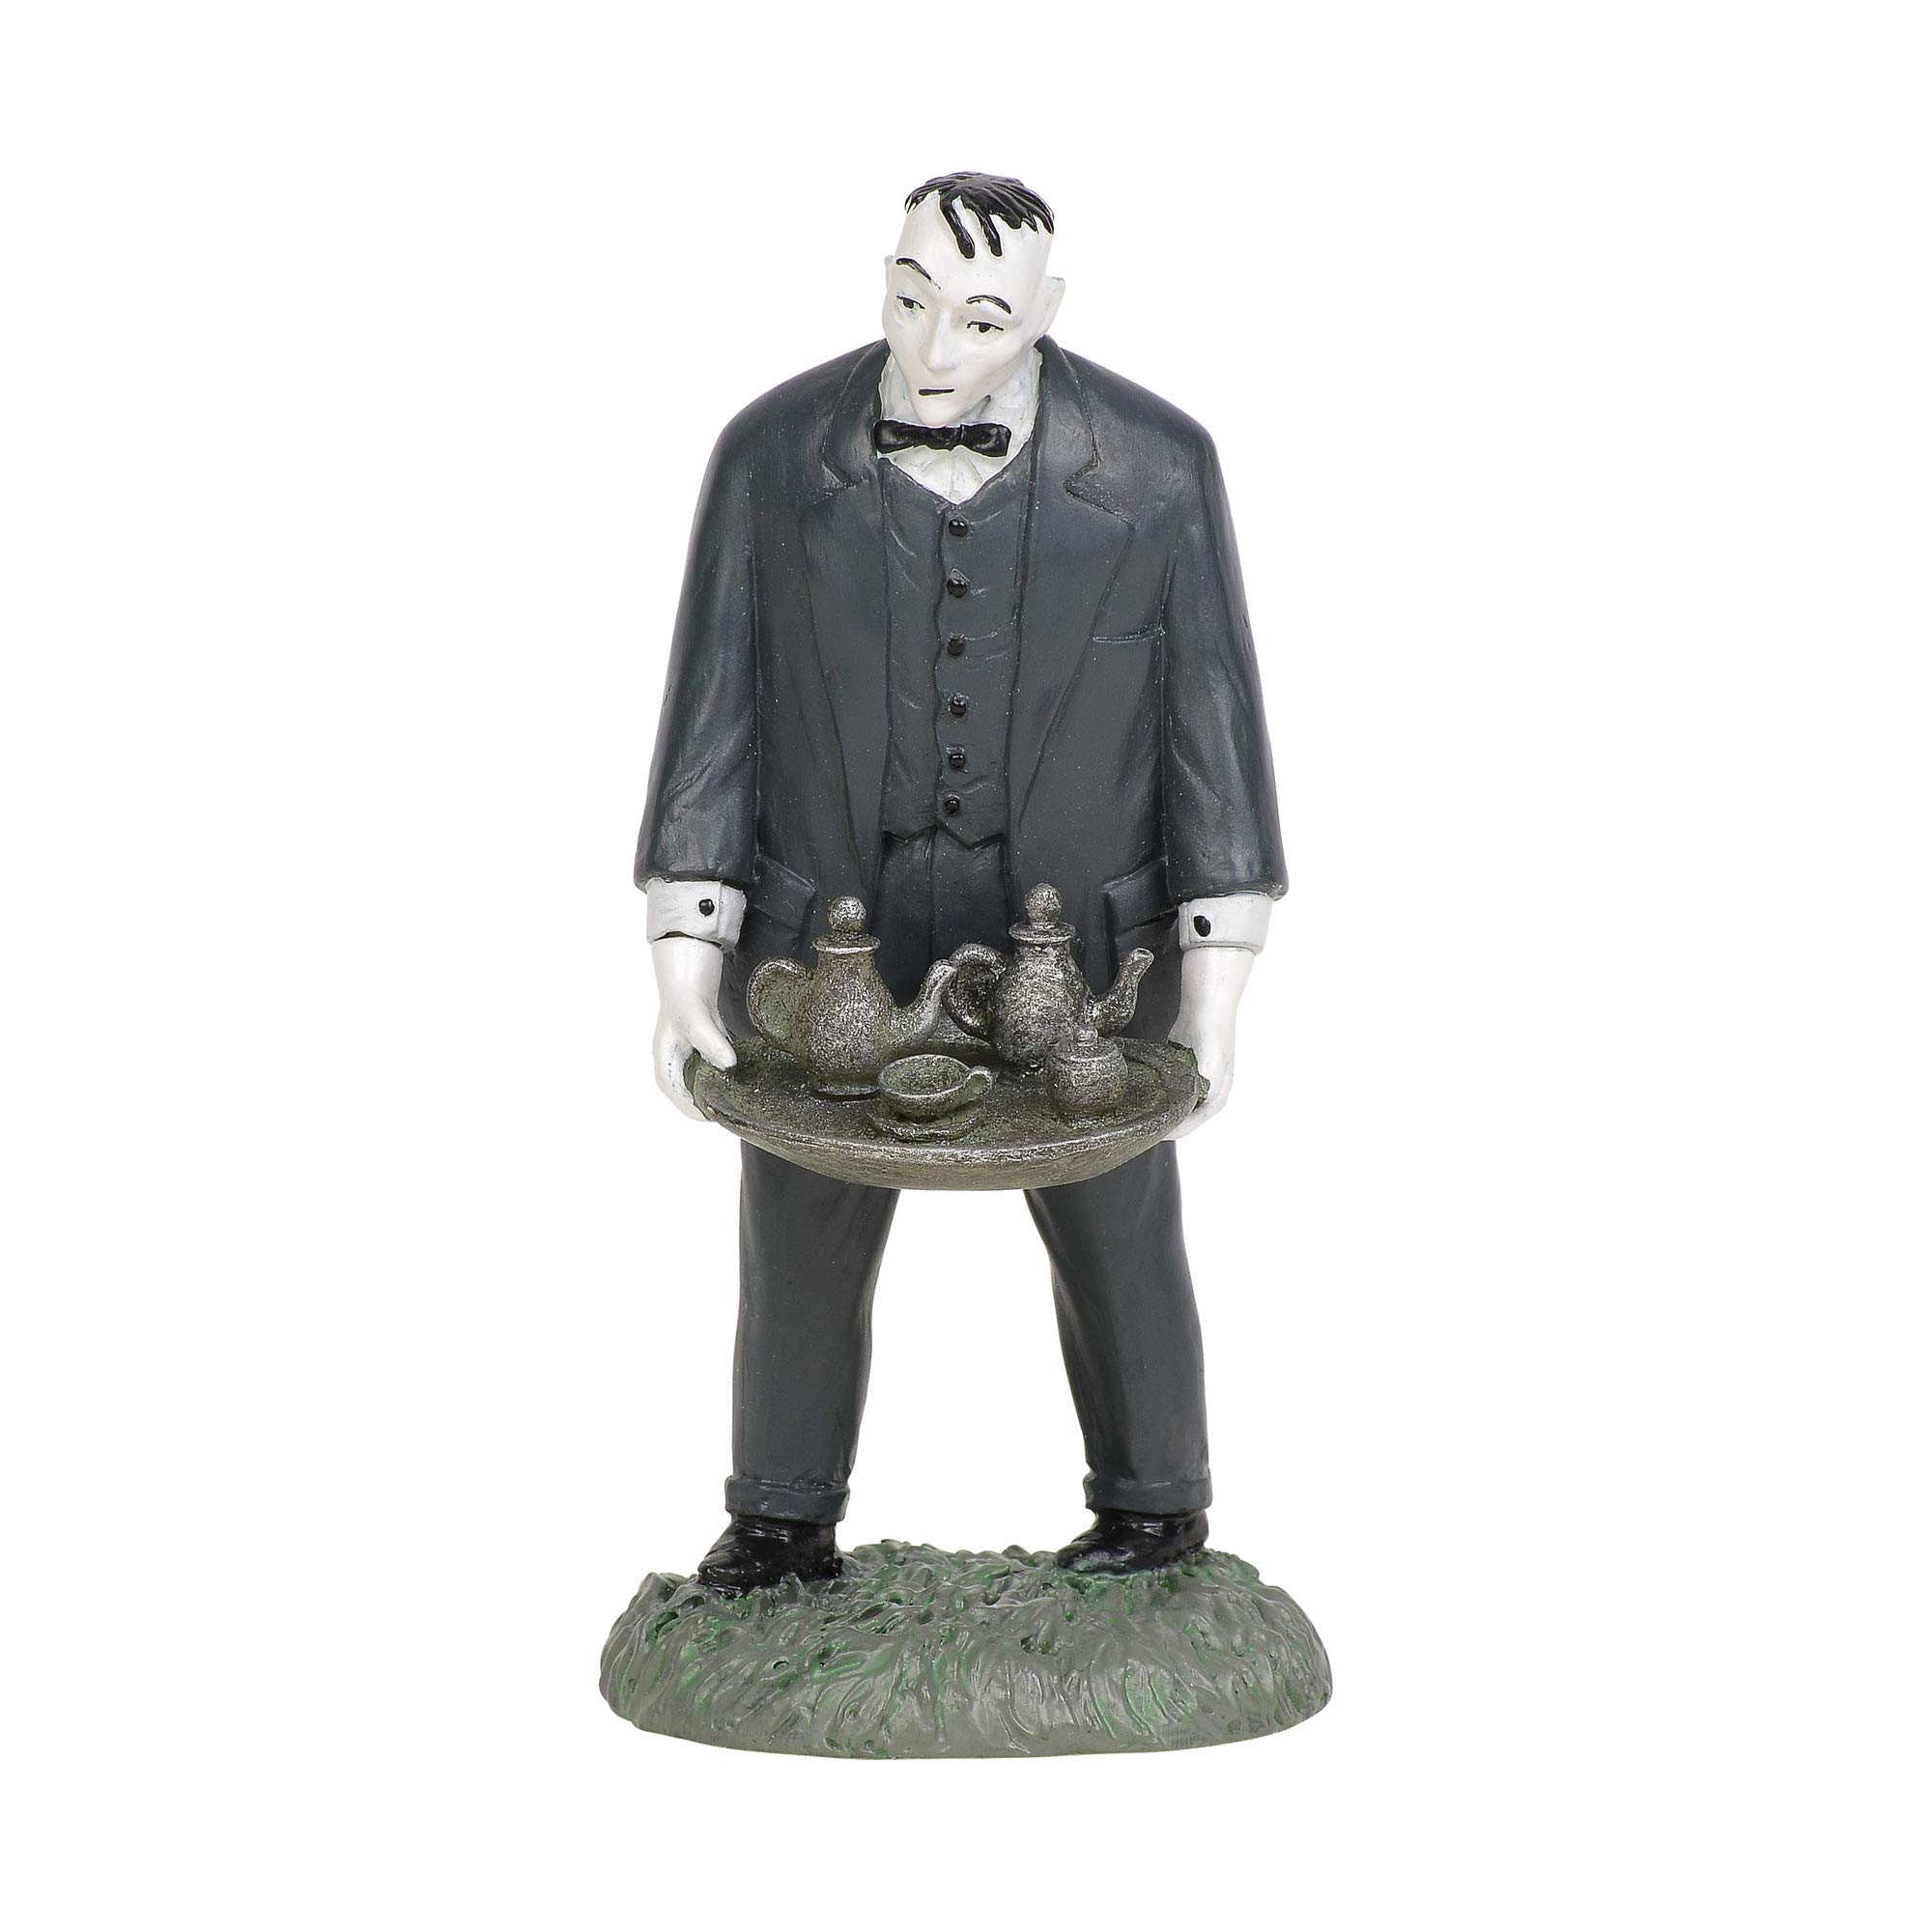 Department 56 Hot Properties Village Lurch, The Butler by Department 56